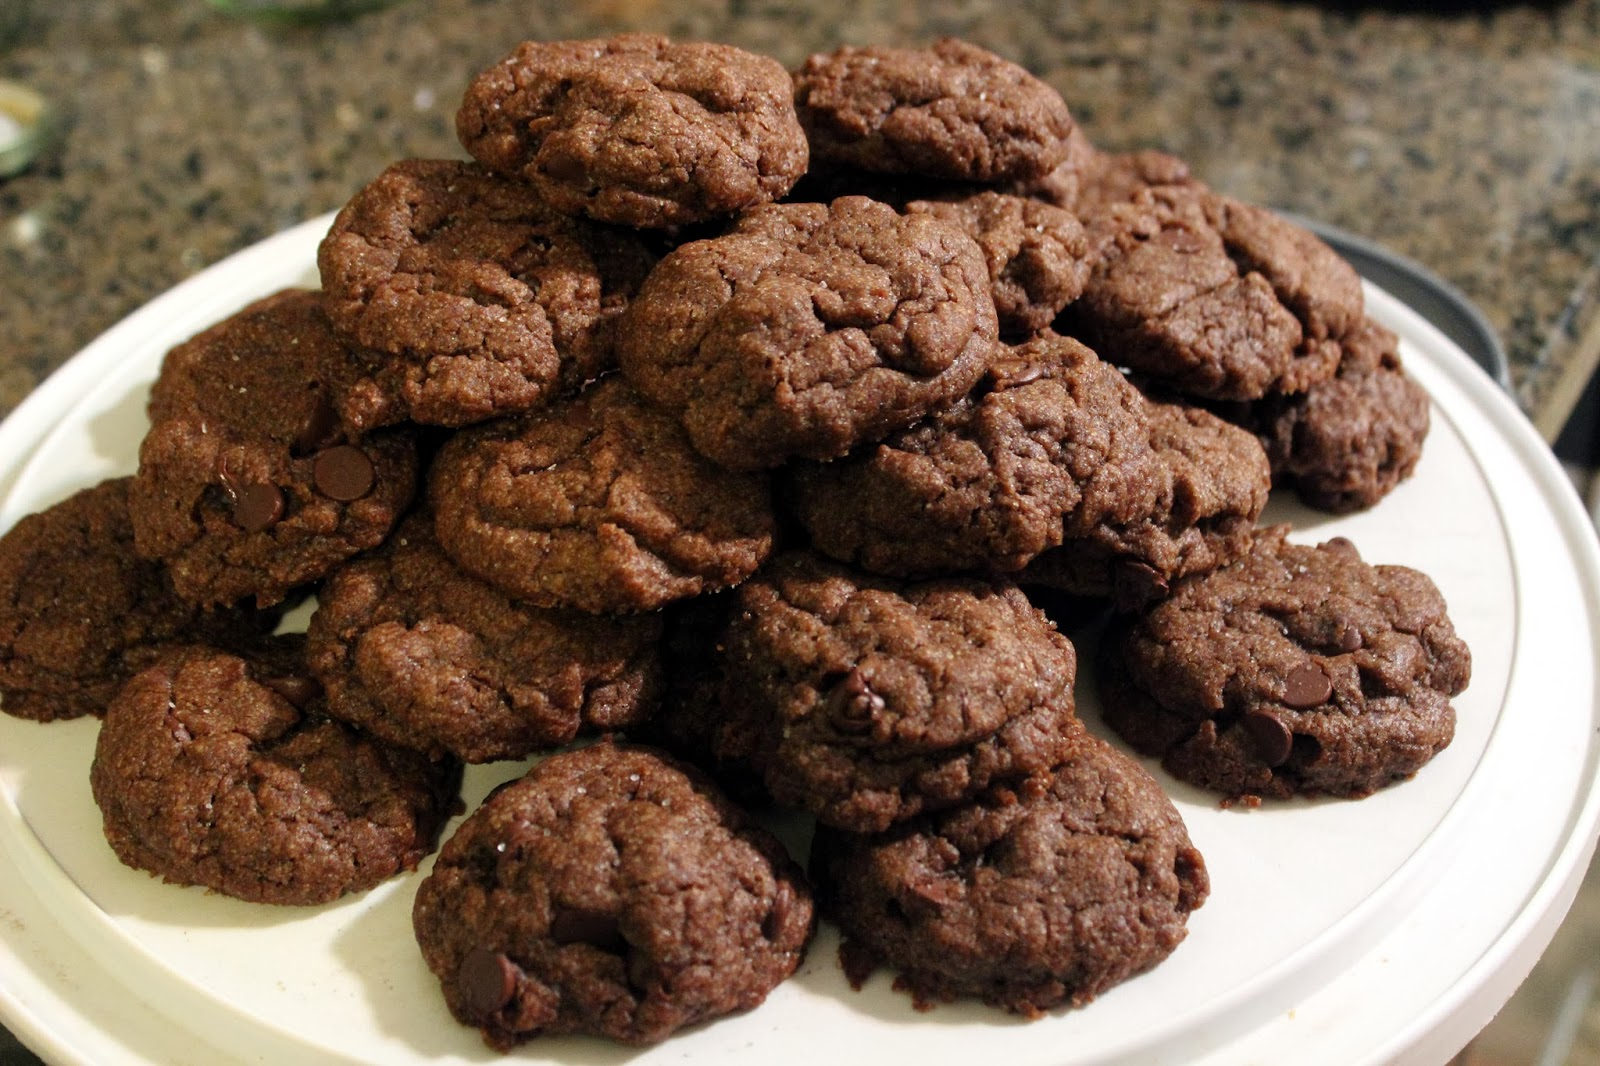 ... chip pudding cookies print these double chocolate chip pudding cookies